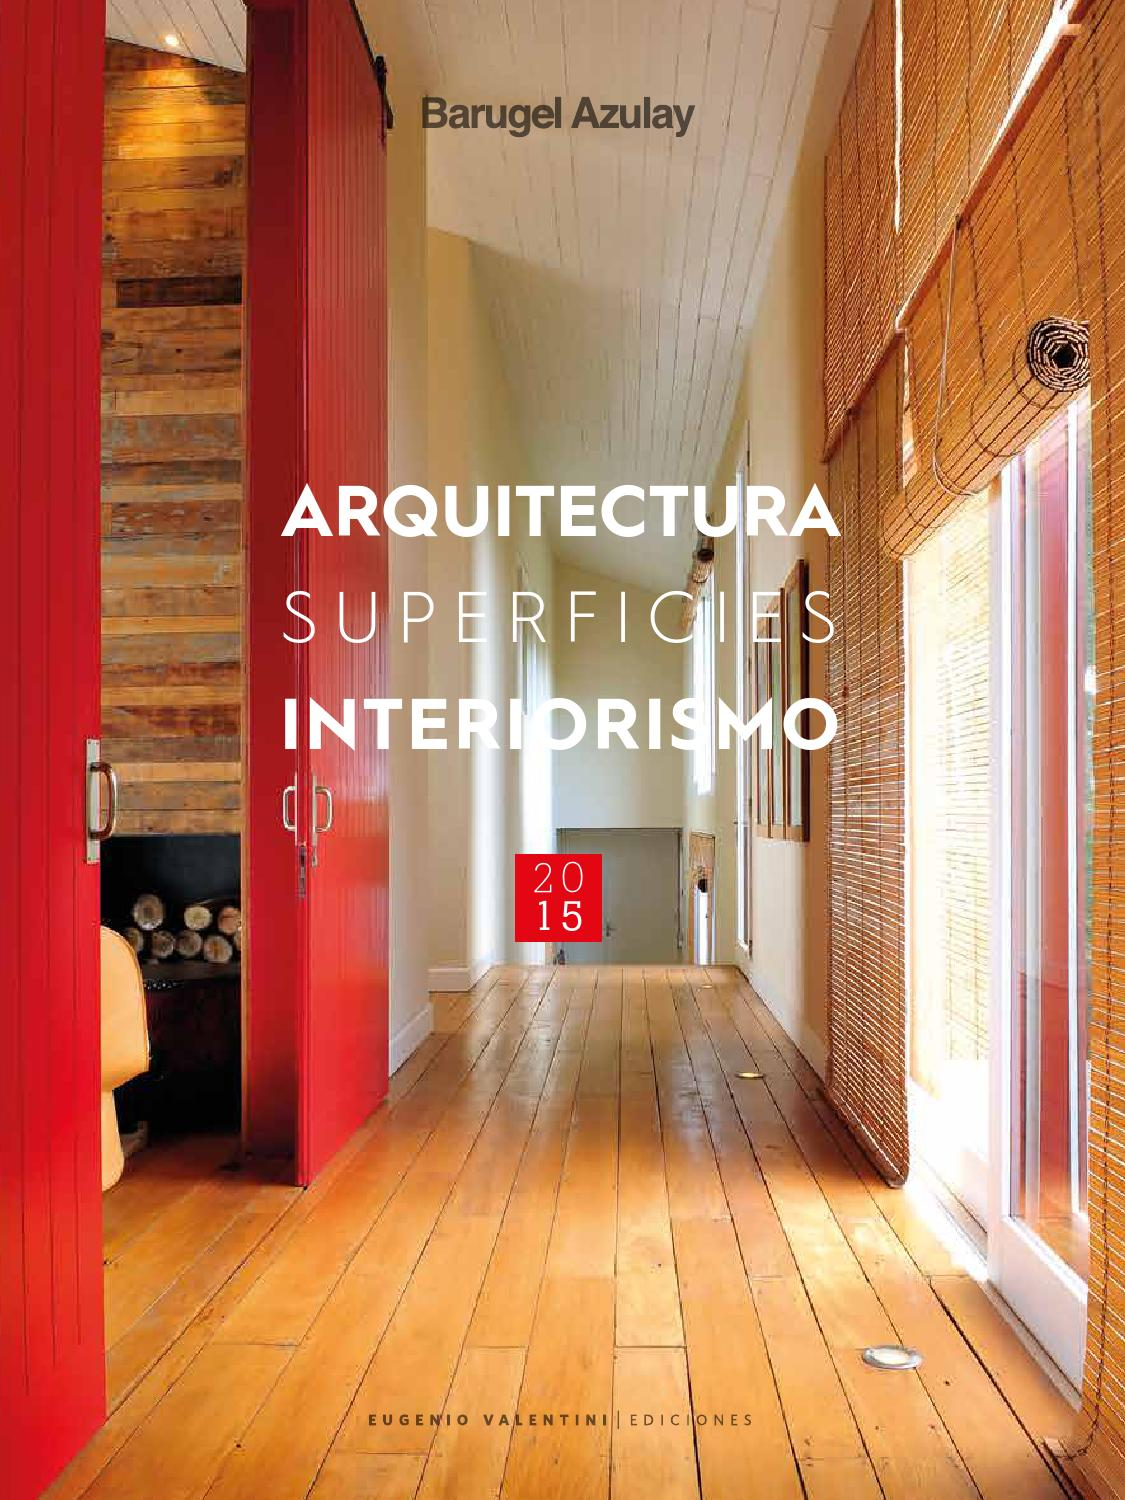 Arquitectura superficies interiorismo 2015 by un amplio for Articulos de arquitectura 2015